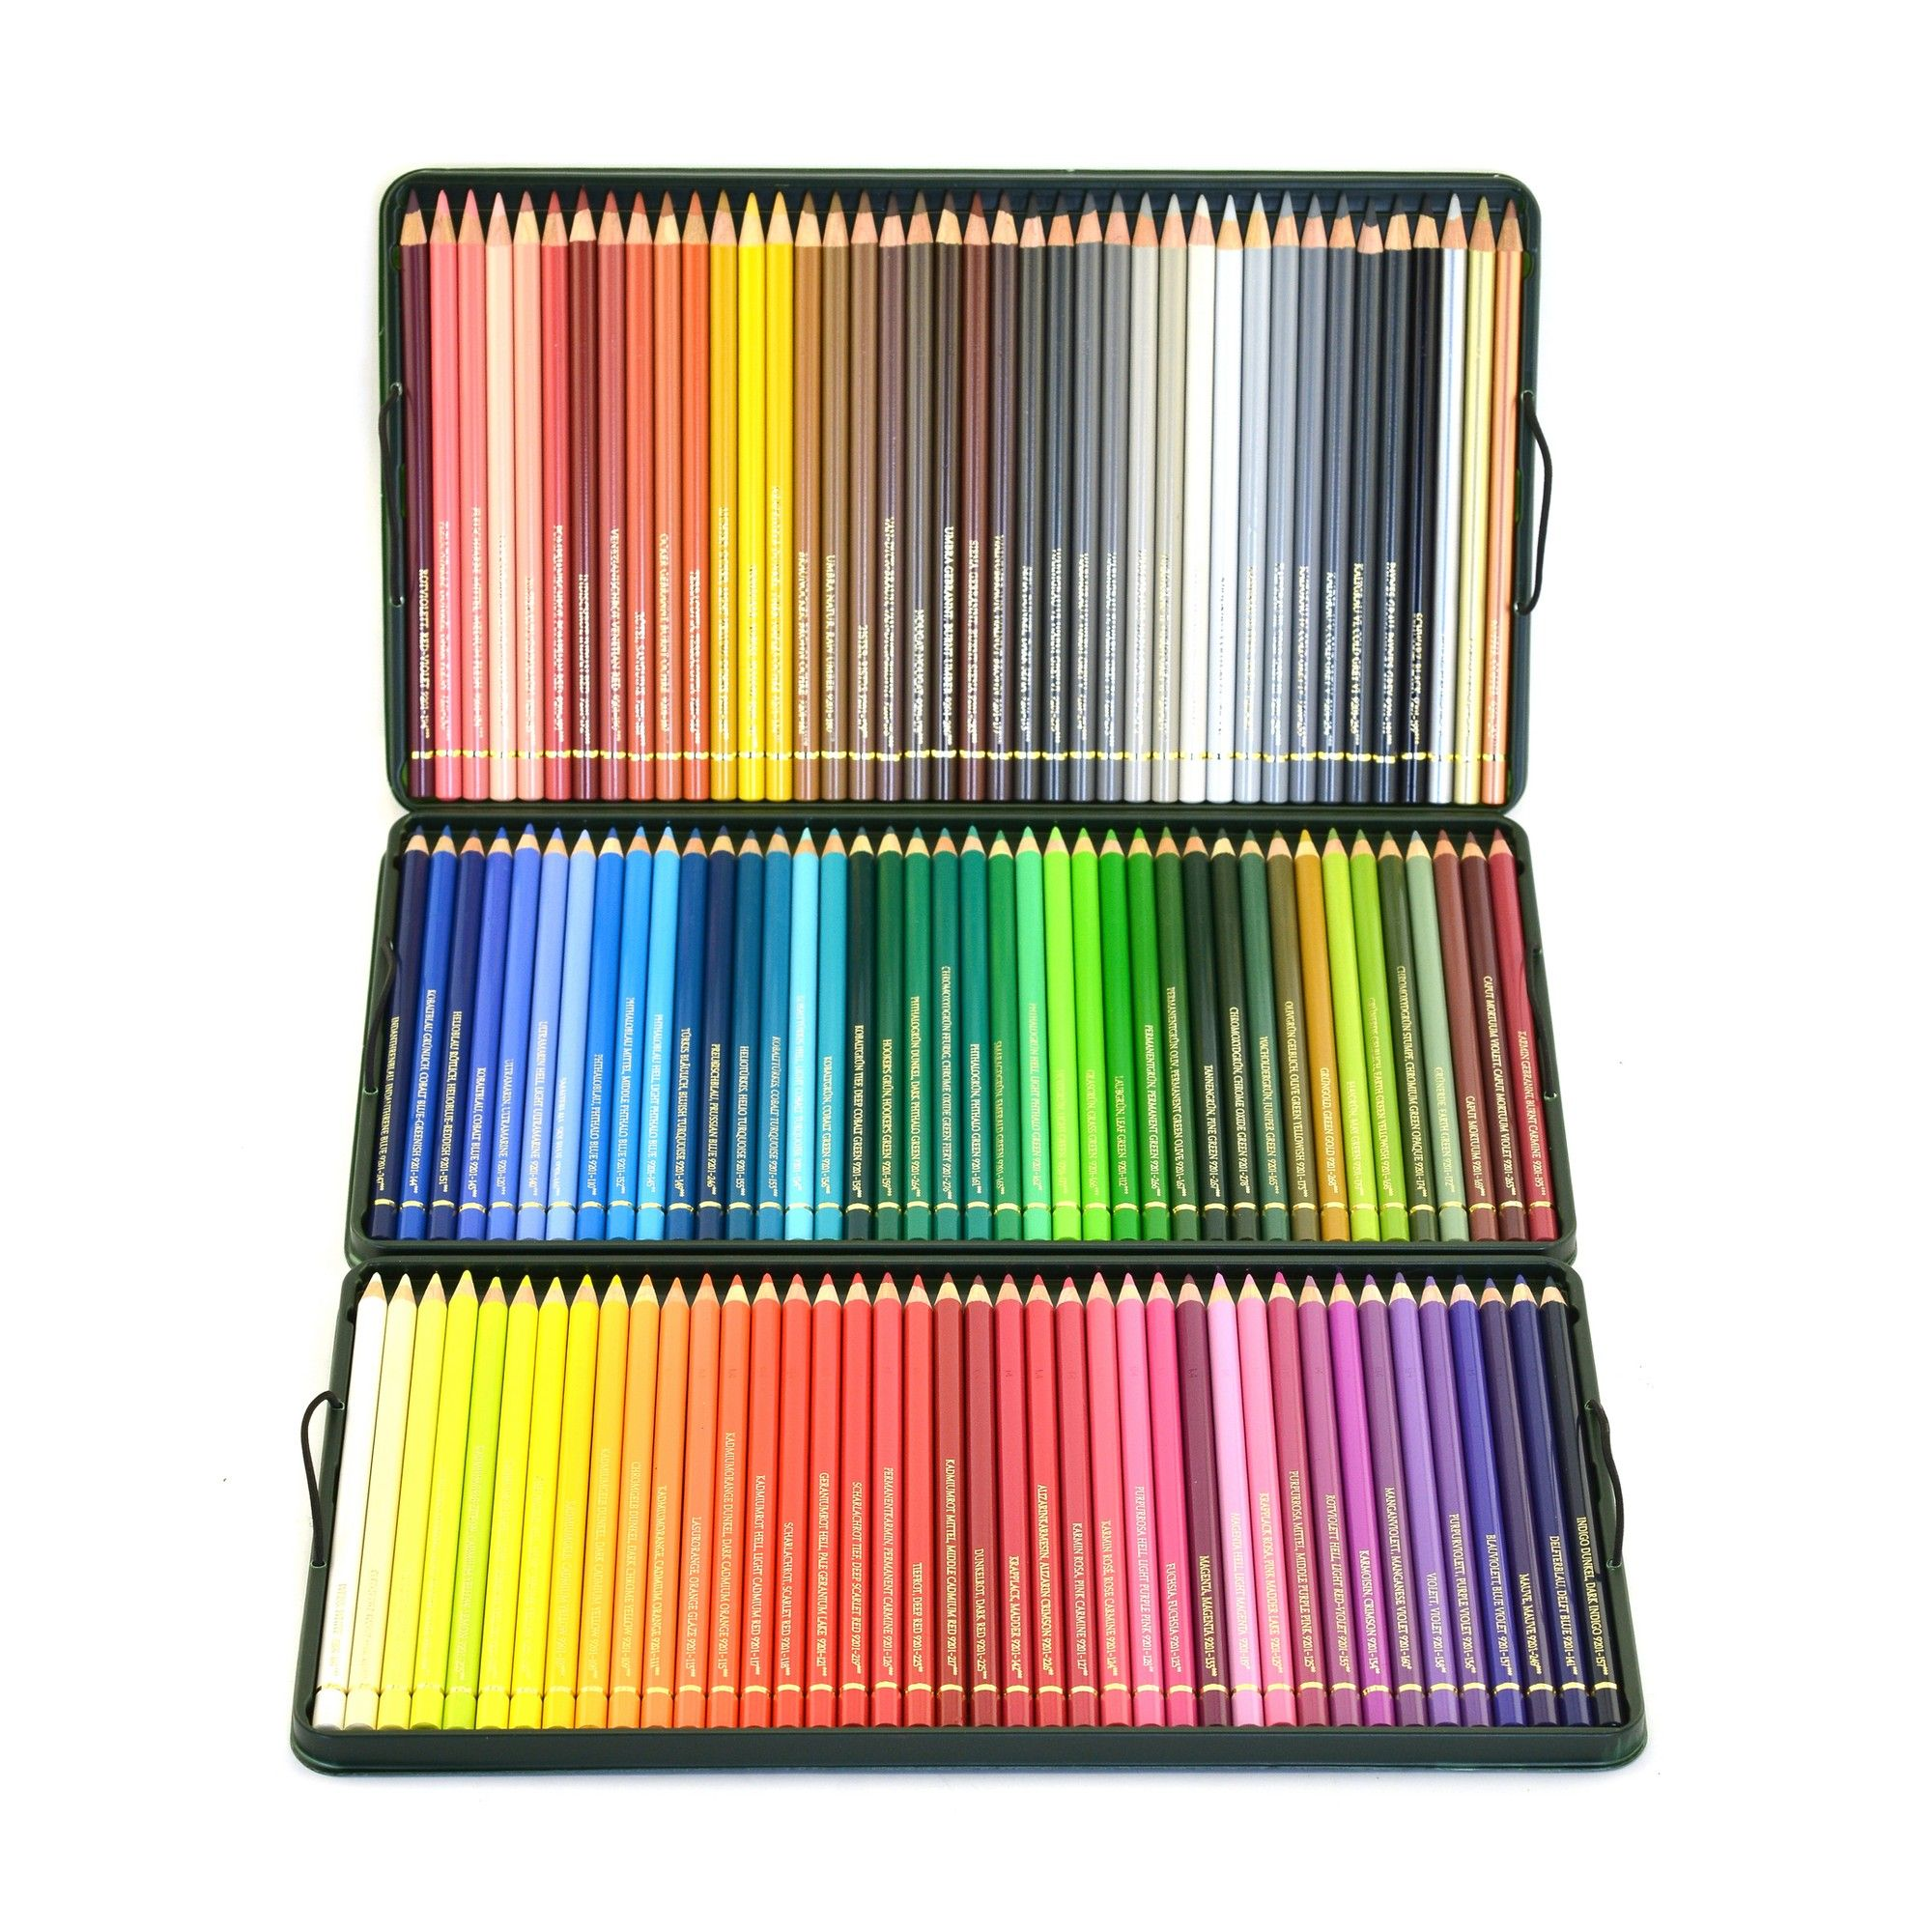 Polychromos Colored Pencils Faber Castell 120ct Colored Pencil